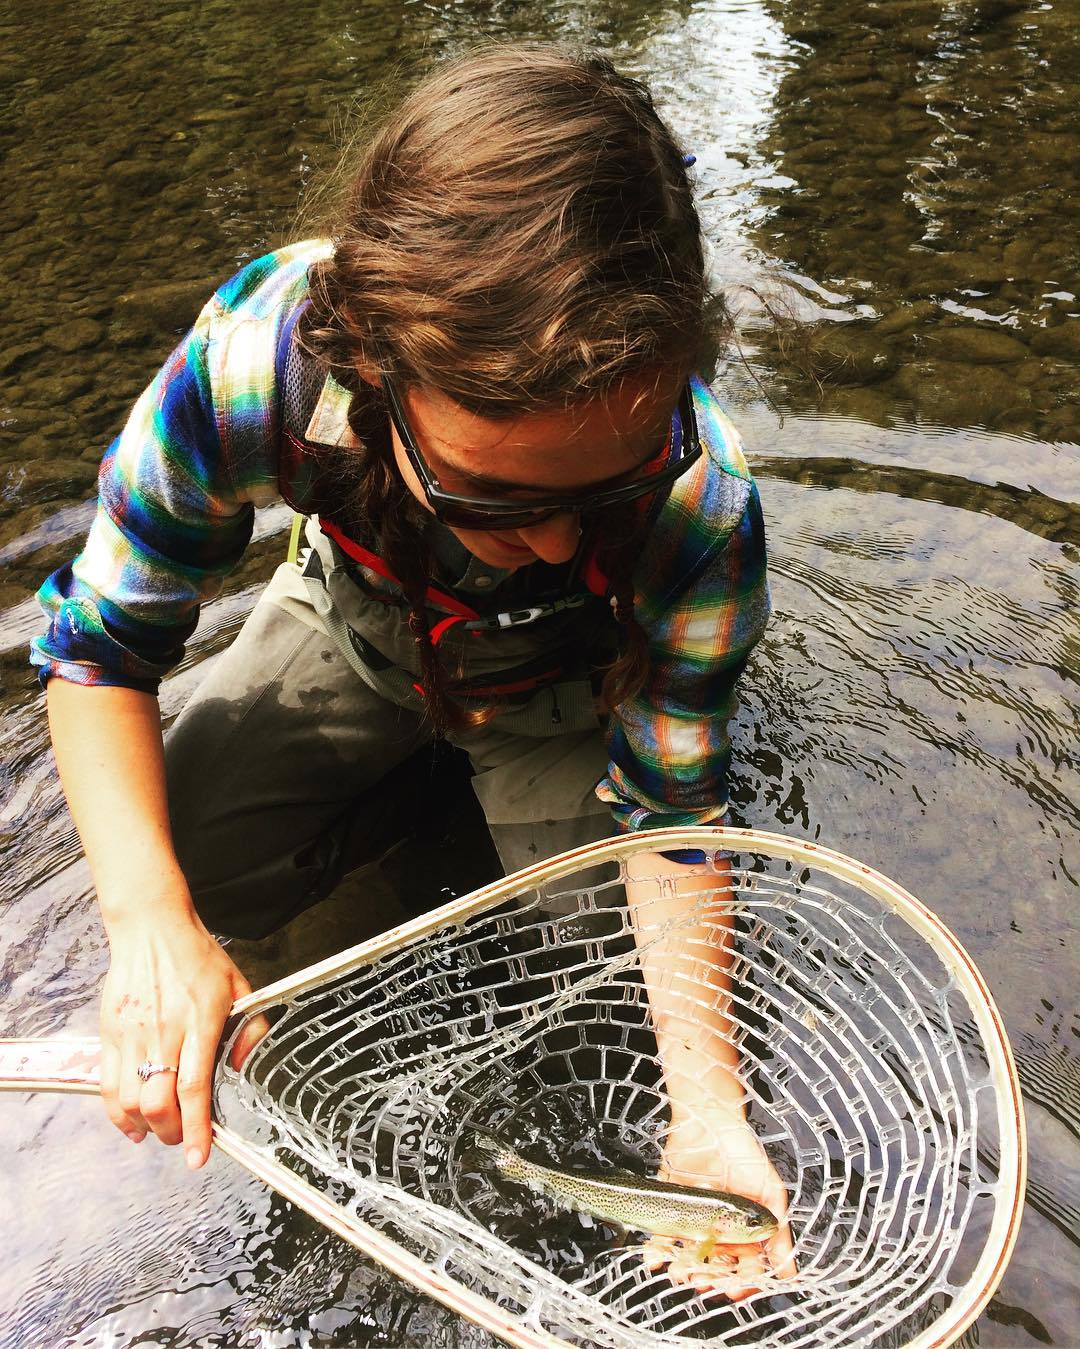 Woman in checked blue shirt and sunglasses kneels by the water holding a net with fish.